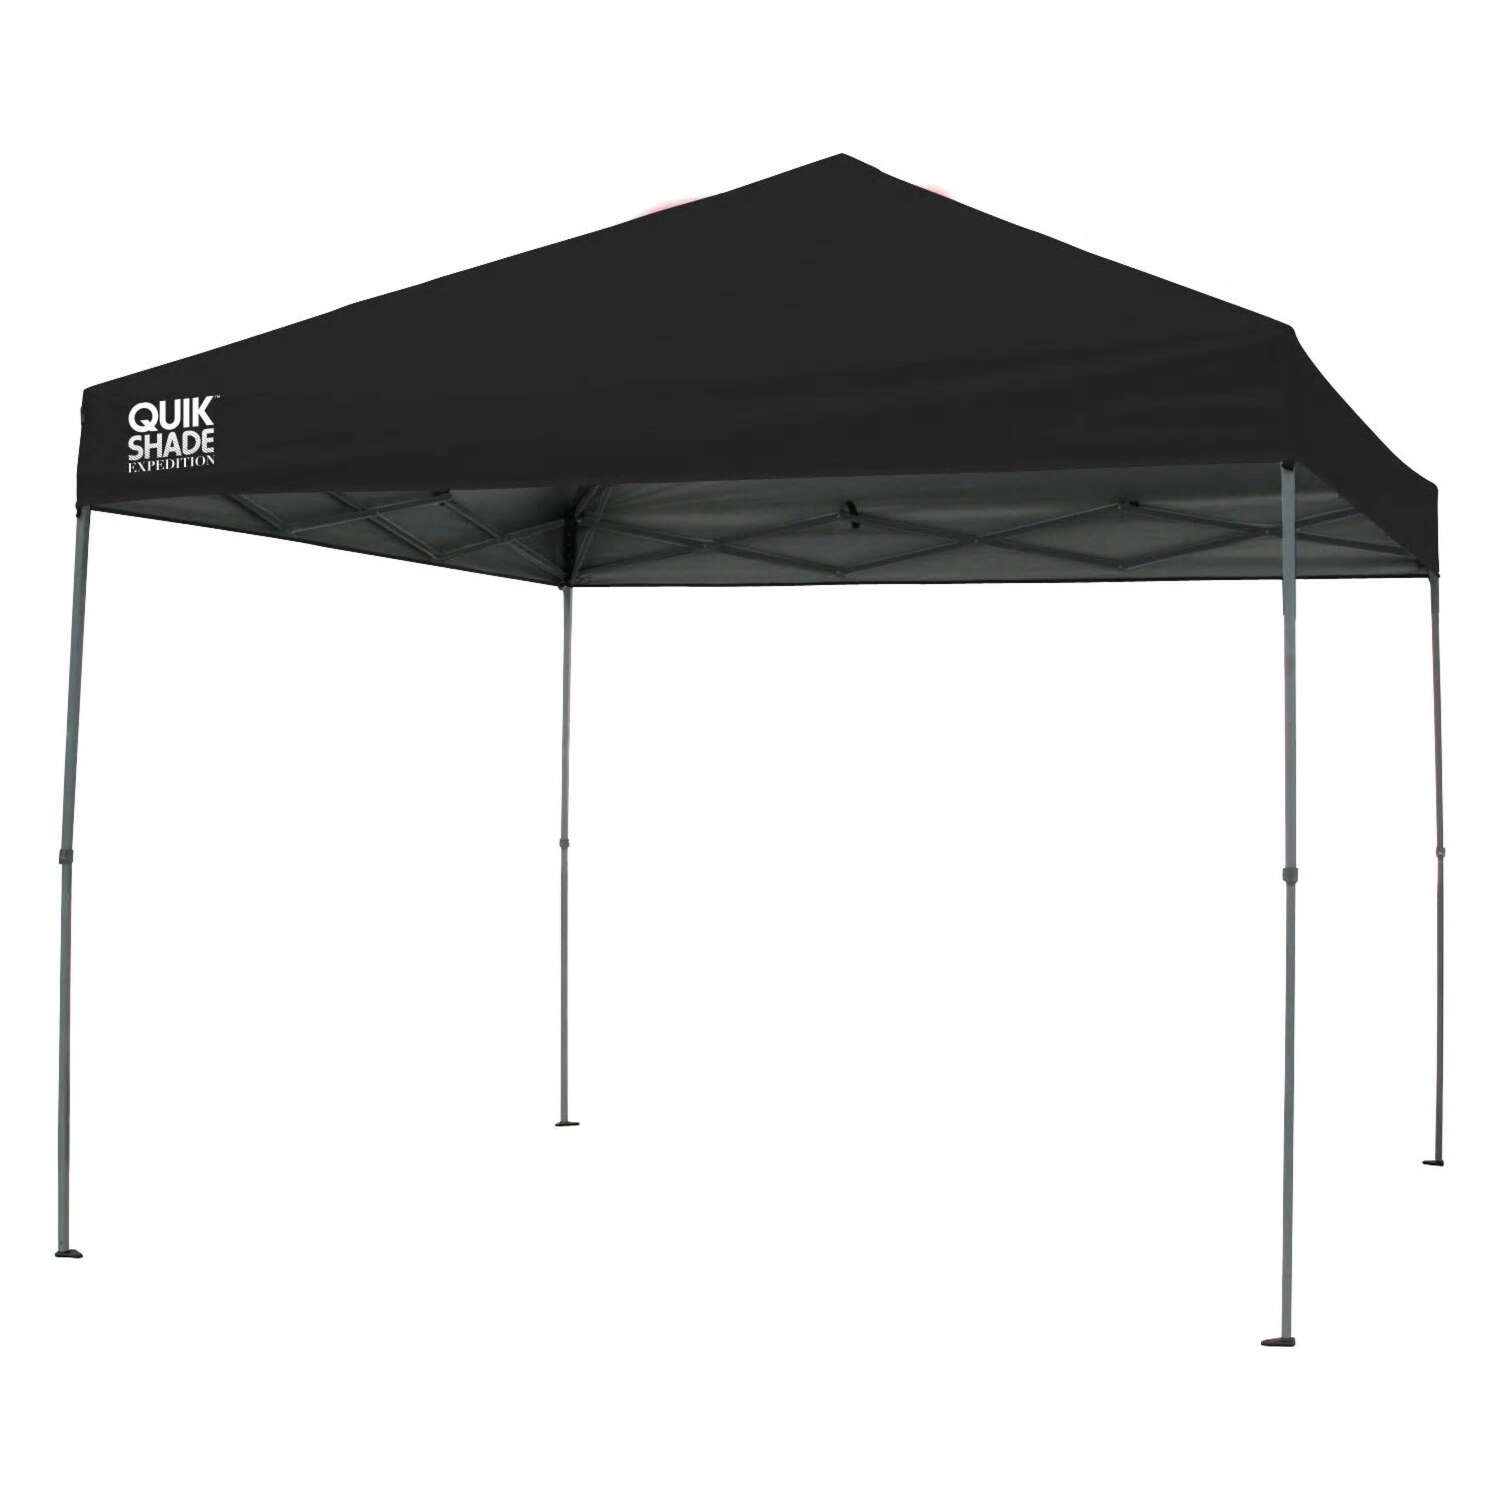 Quik Shade  Expedition  Polyester  Canopy  10 ft. W x 10 ft. L